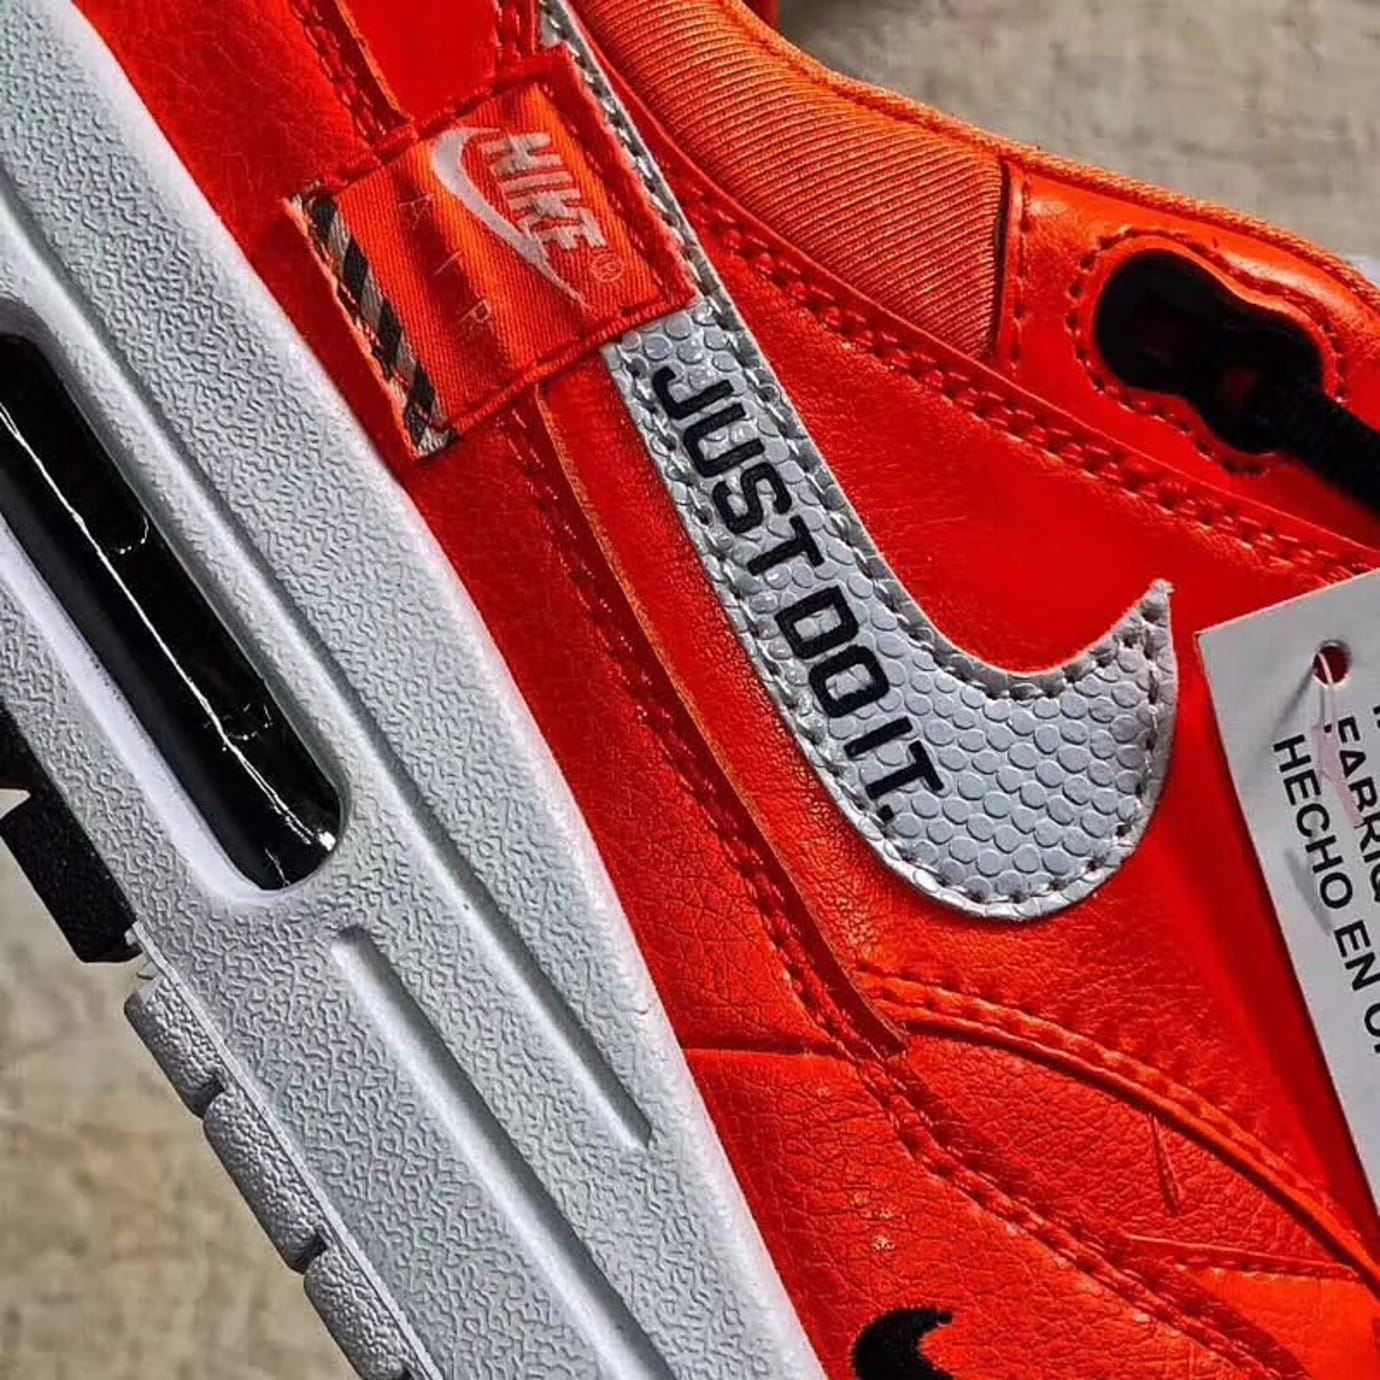 Nike Air Max 1 Just Do It Orange Swoosh